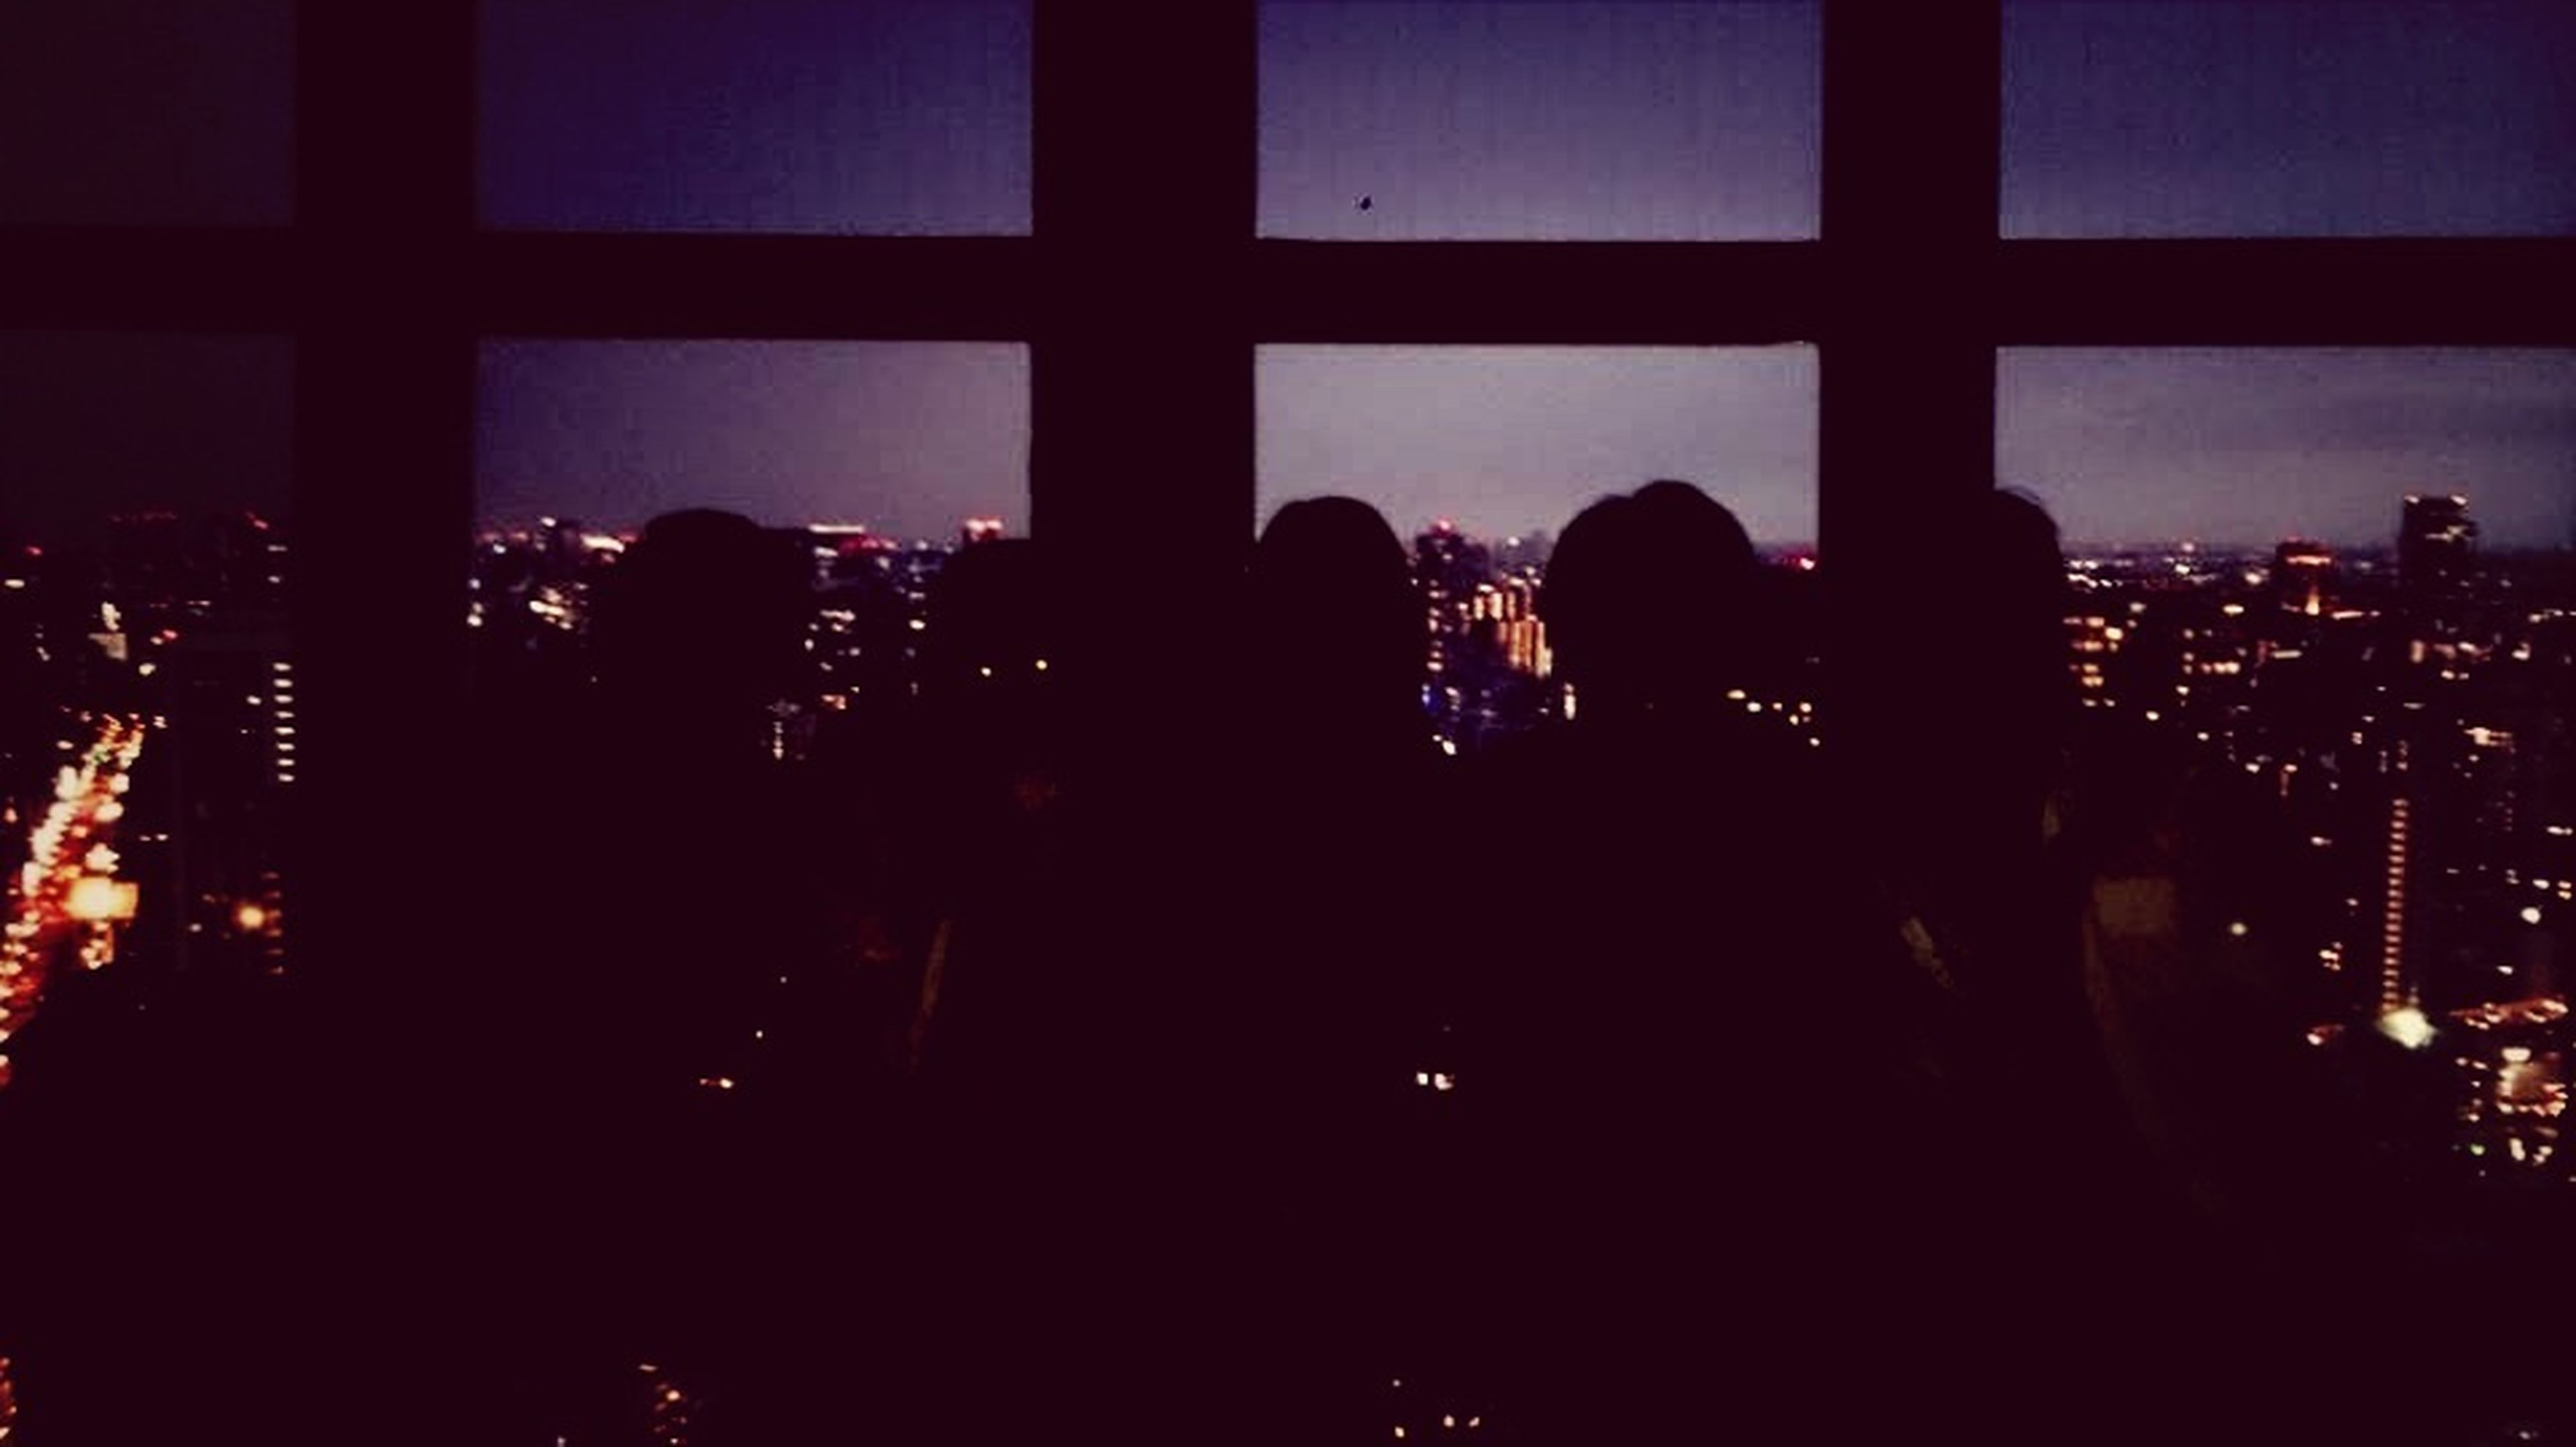 indoors, illuminated, silhouette, architecture, built structure, night, city, building exterior, dark, men, window, lifestyles, large group of people, city life, person, modern, glass - material, leisure activity, skyscraper